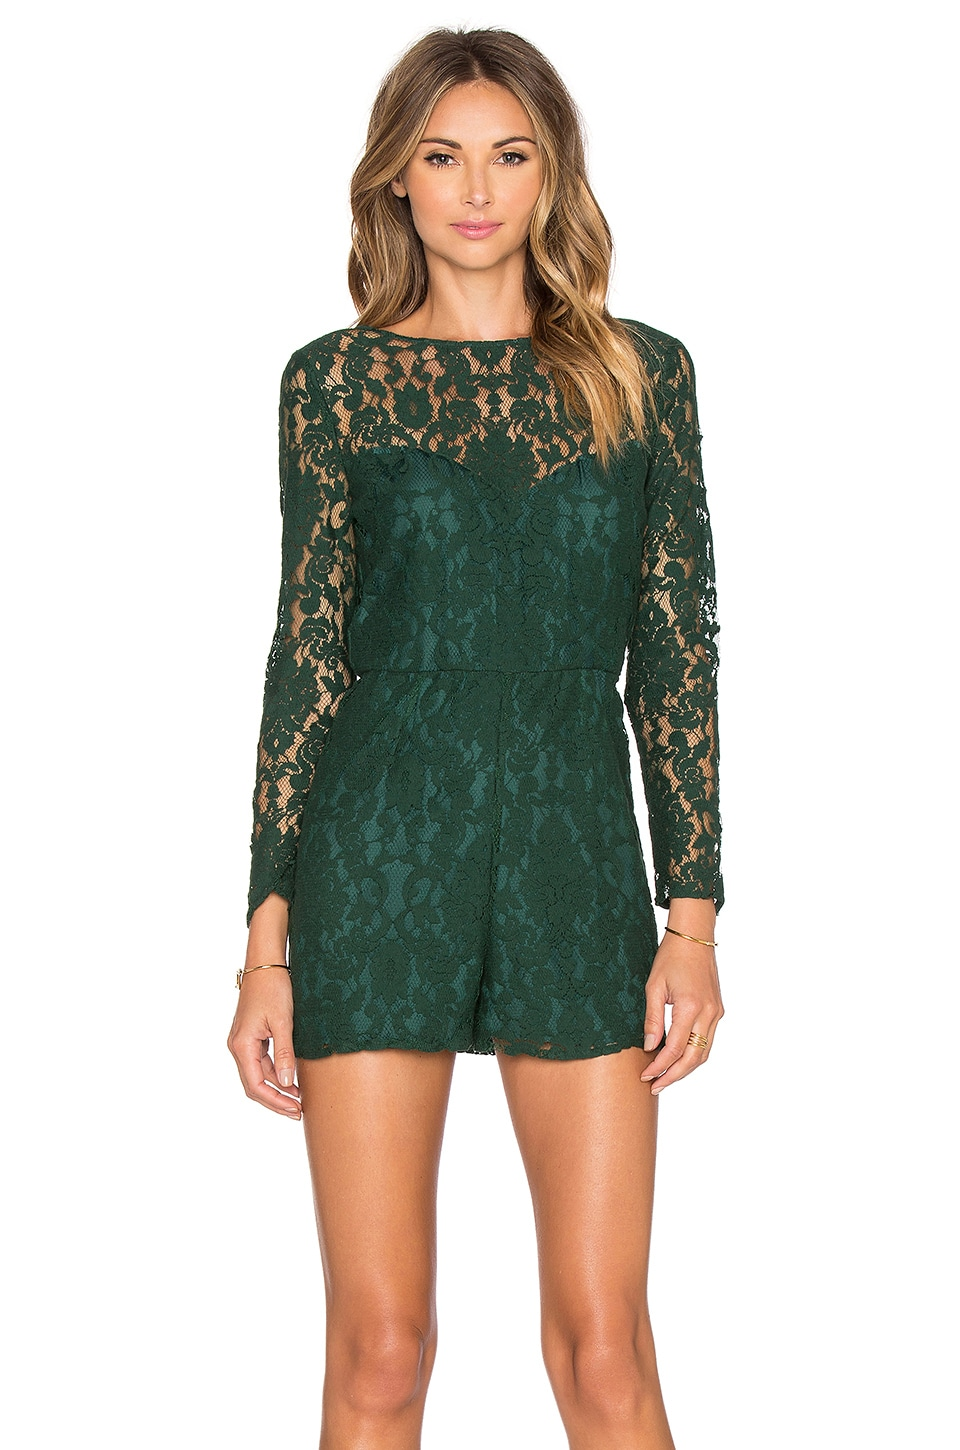 BB Dakota Dasha Romper in Hunter